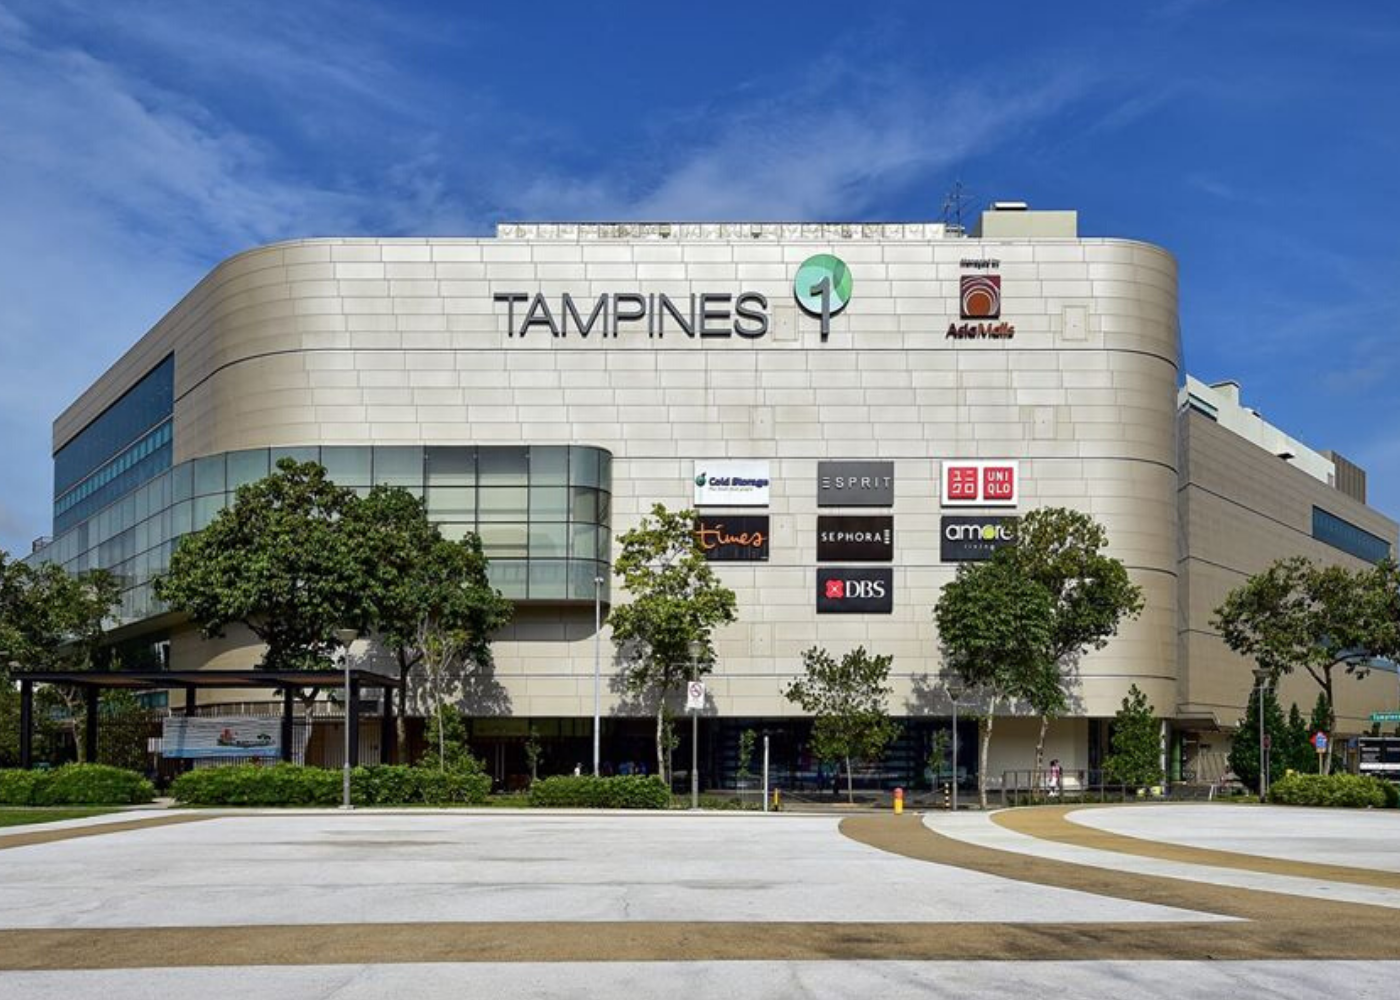 Guide to Tampines